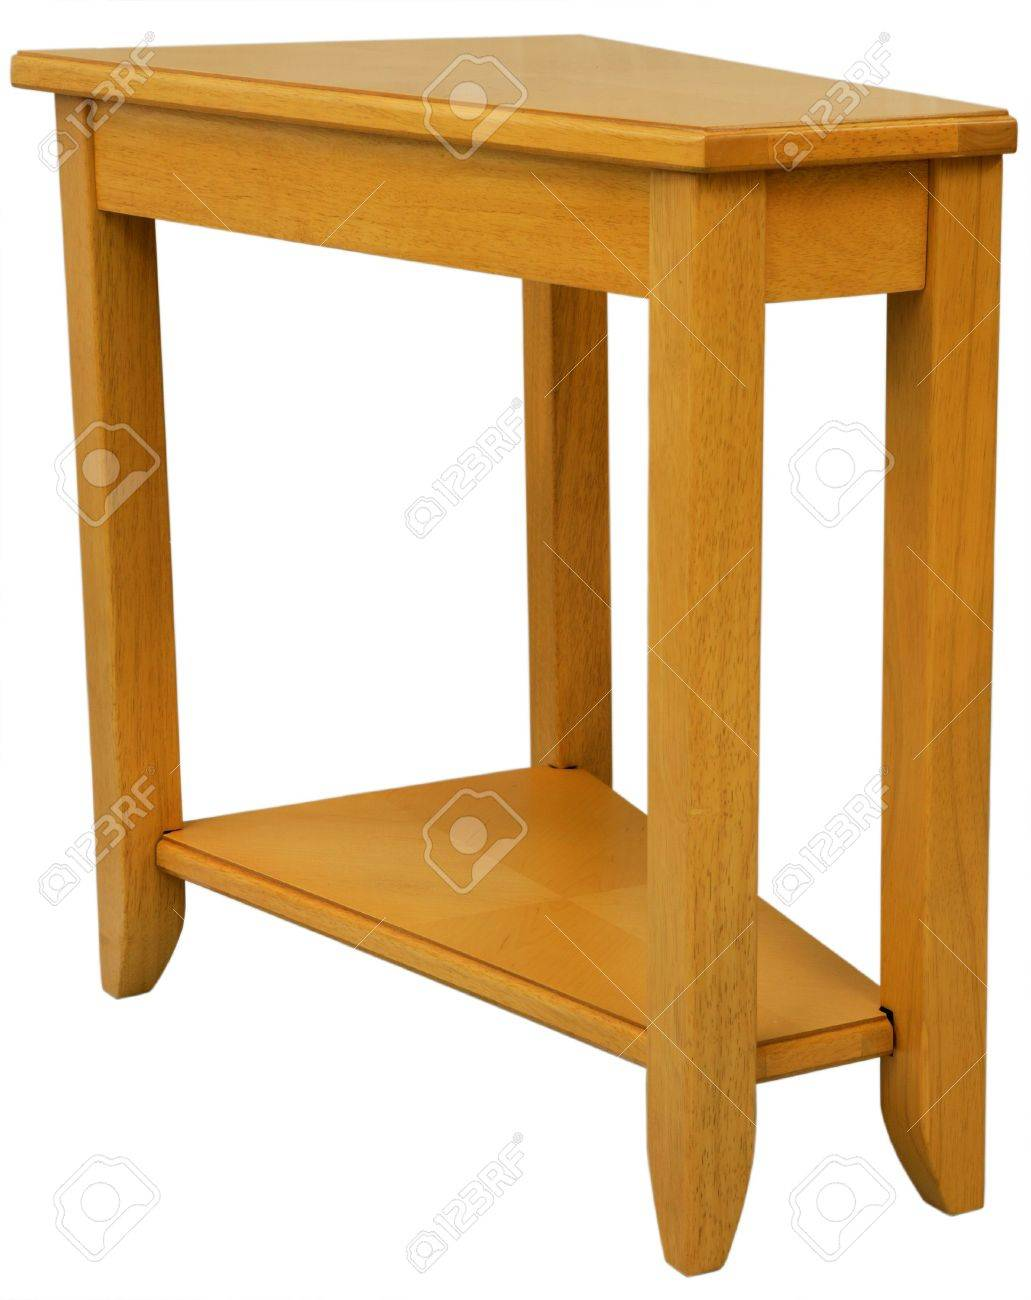 Maple Wood Wedge Shaped End Table In Natural Finish Stock Photo   2698913